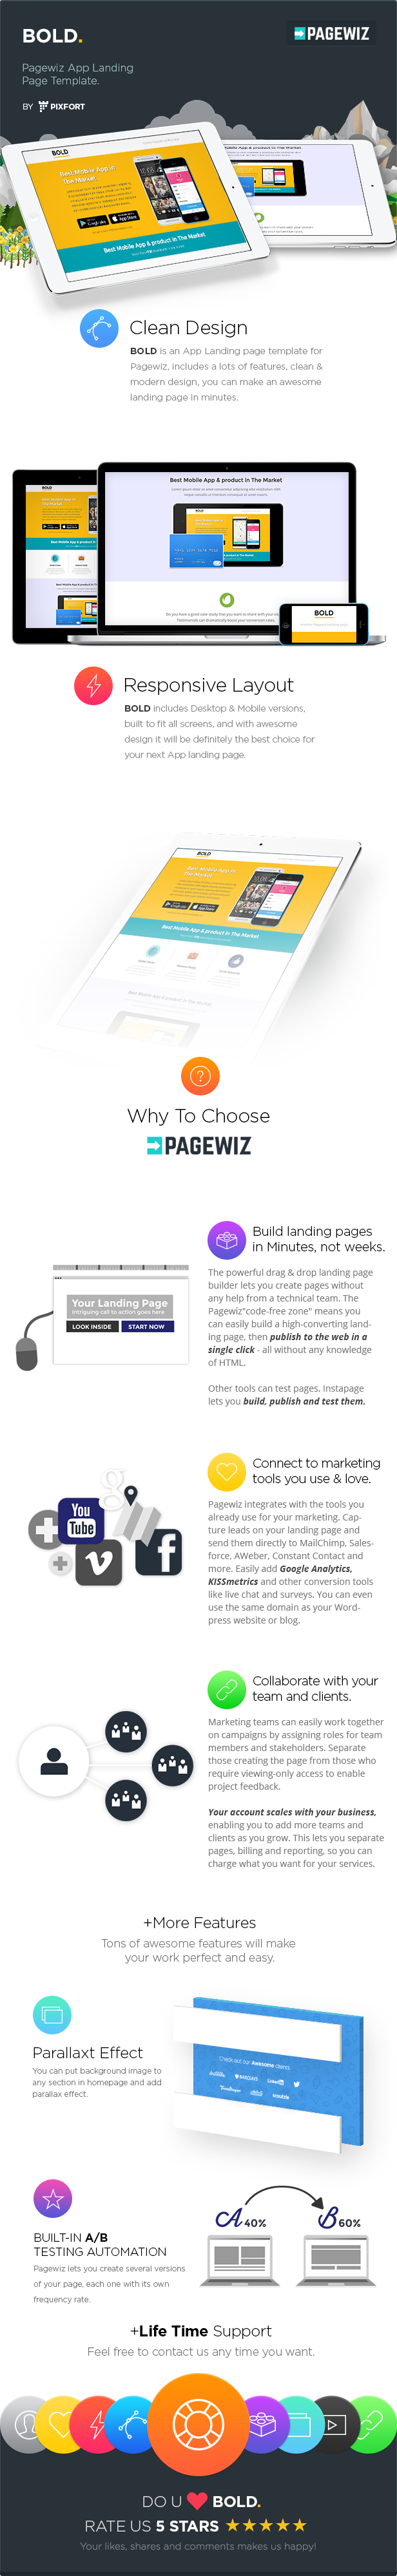 BOLD - Pagewiz App Landing Page Template